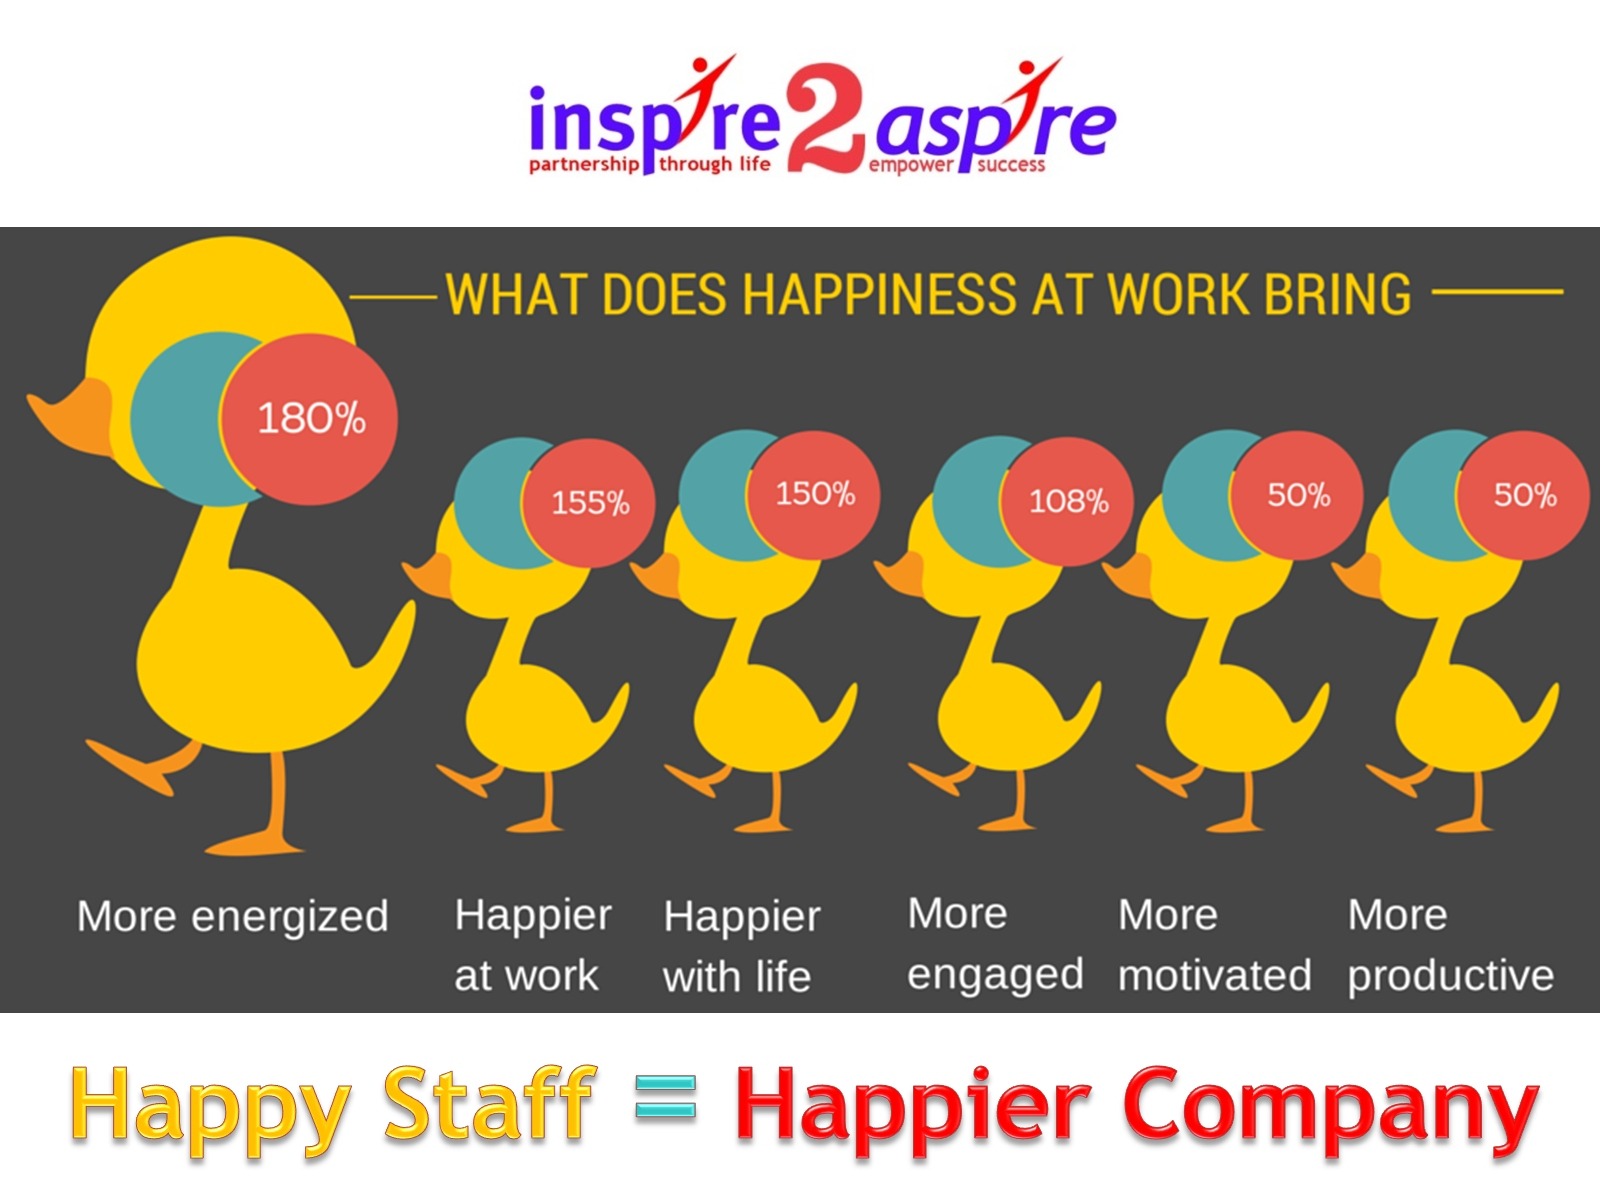 Happy Staff Happier Company